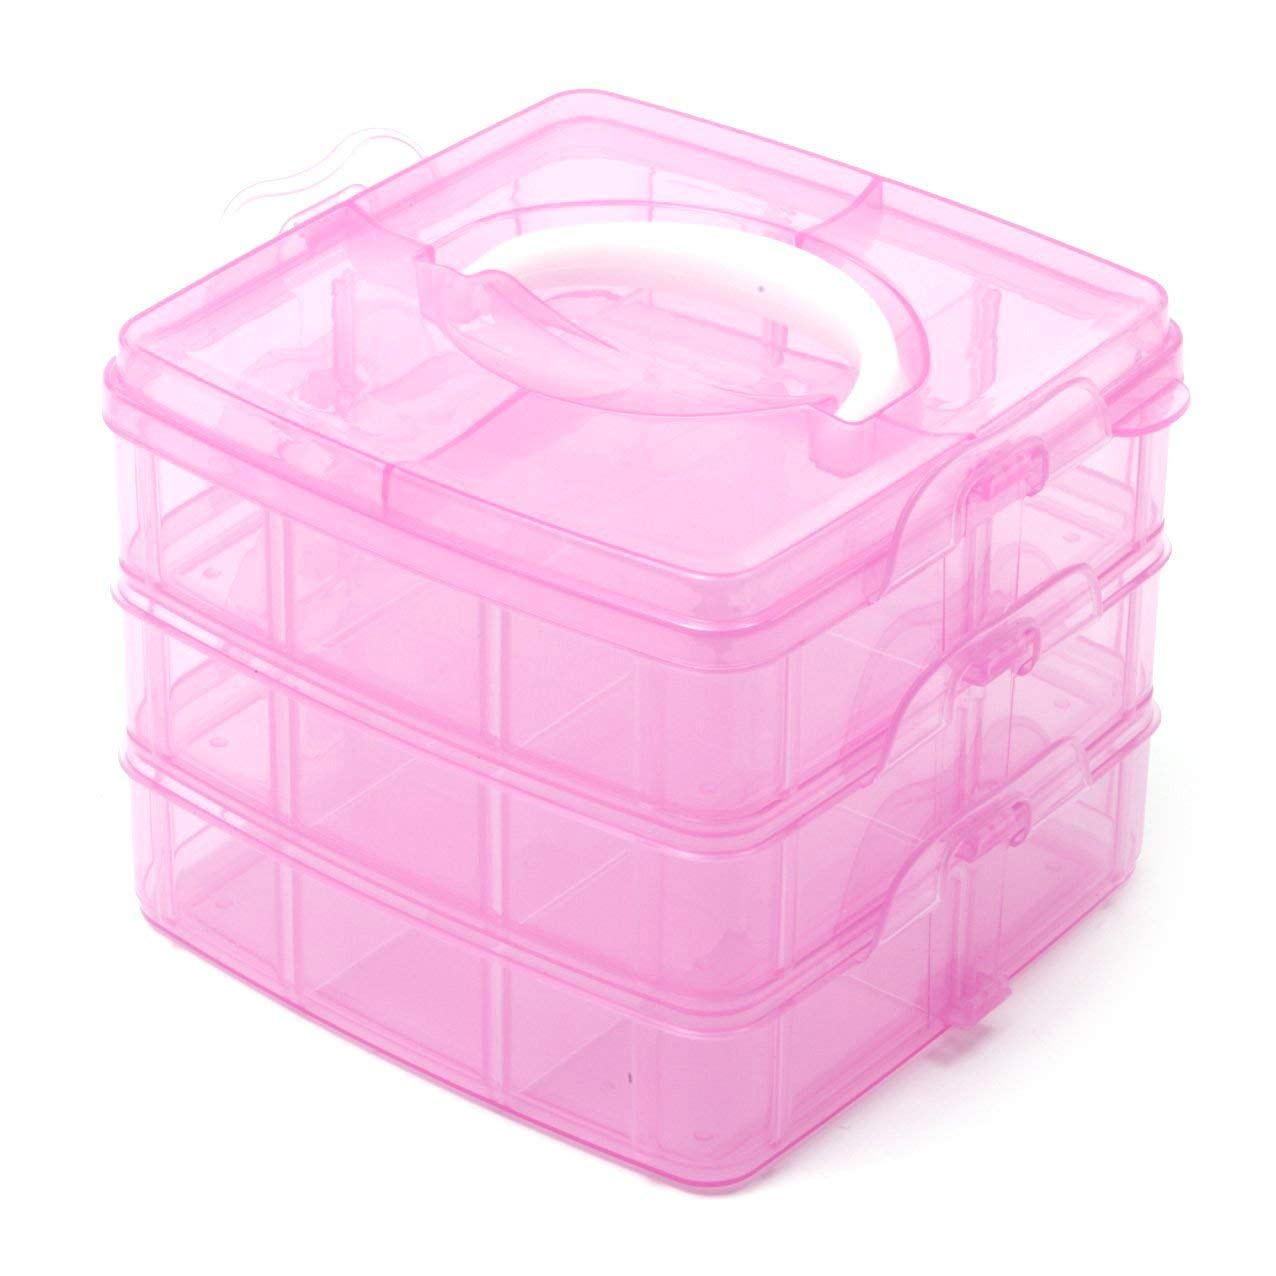 Cheap Craft Tool Box Find Craft Tool Box Deals On Line At Alibaba Com